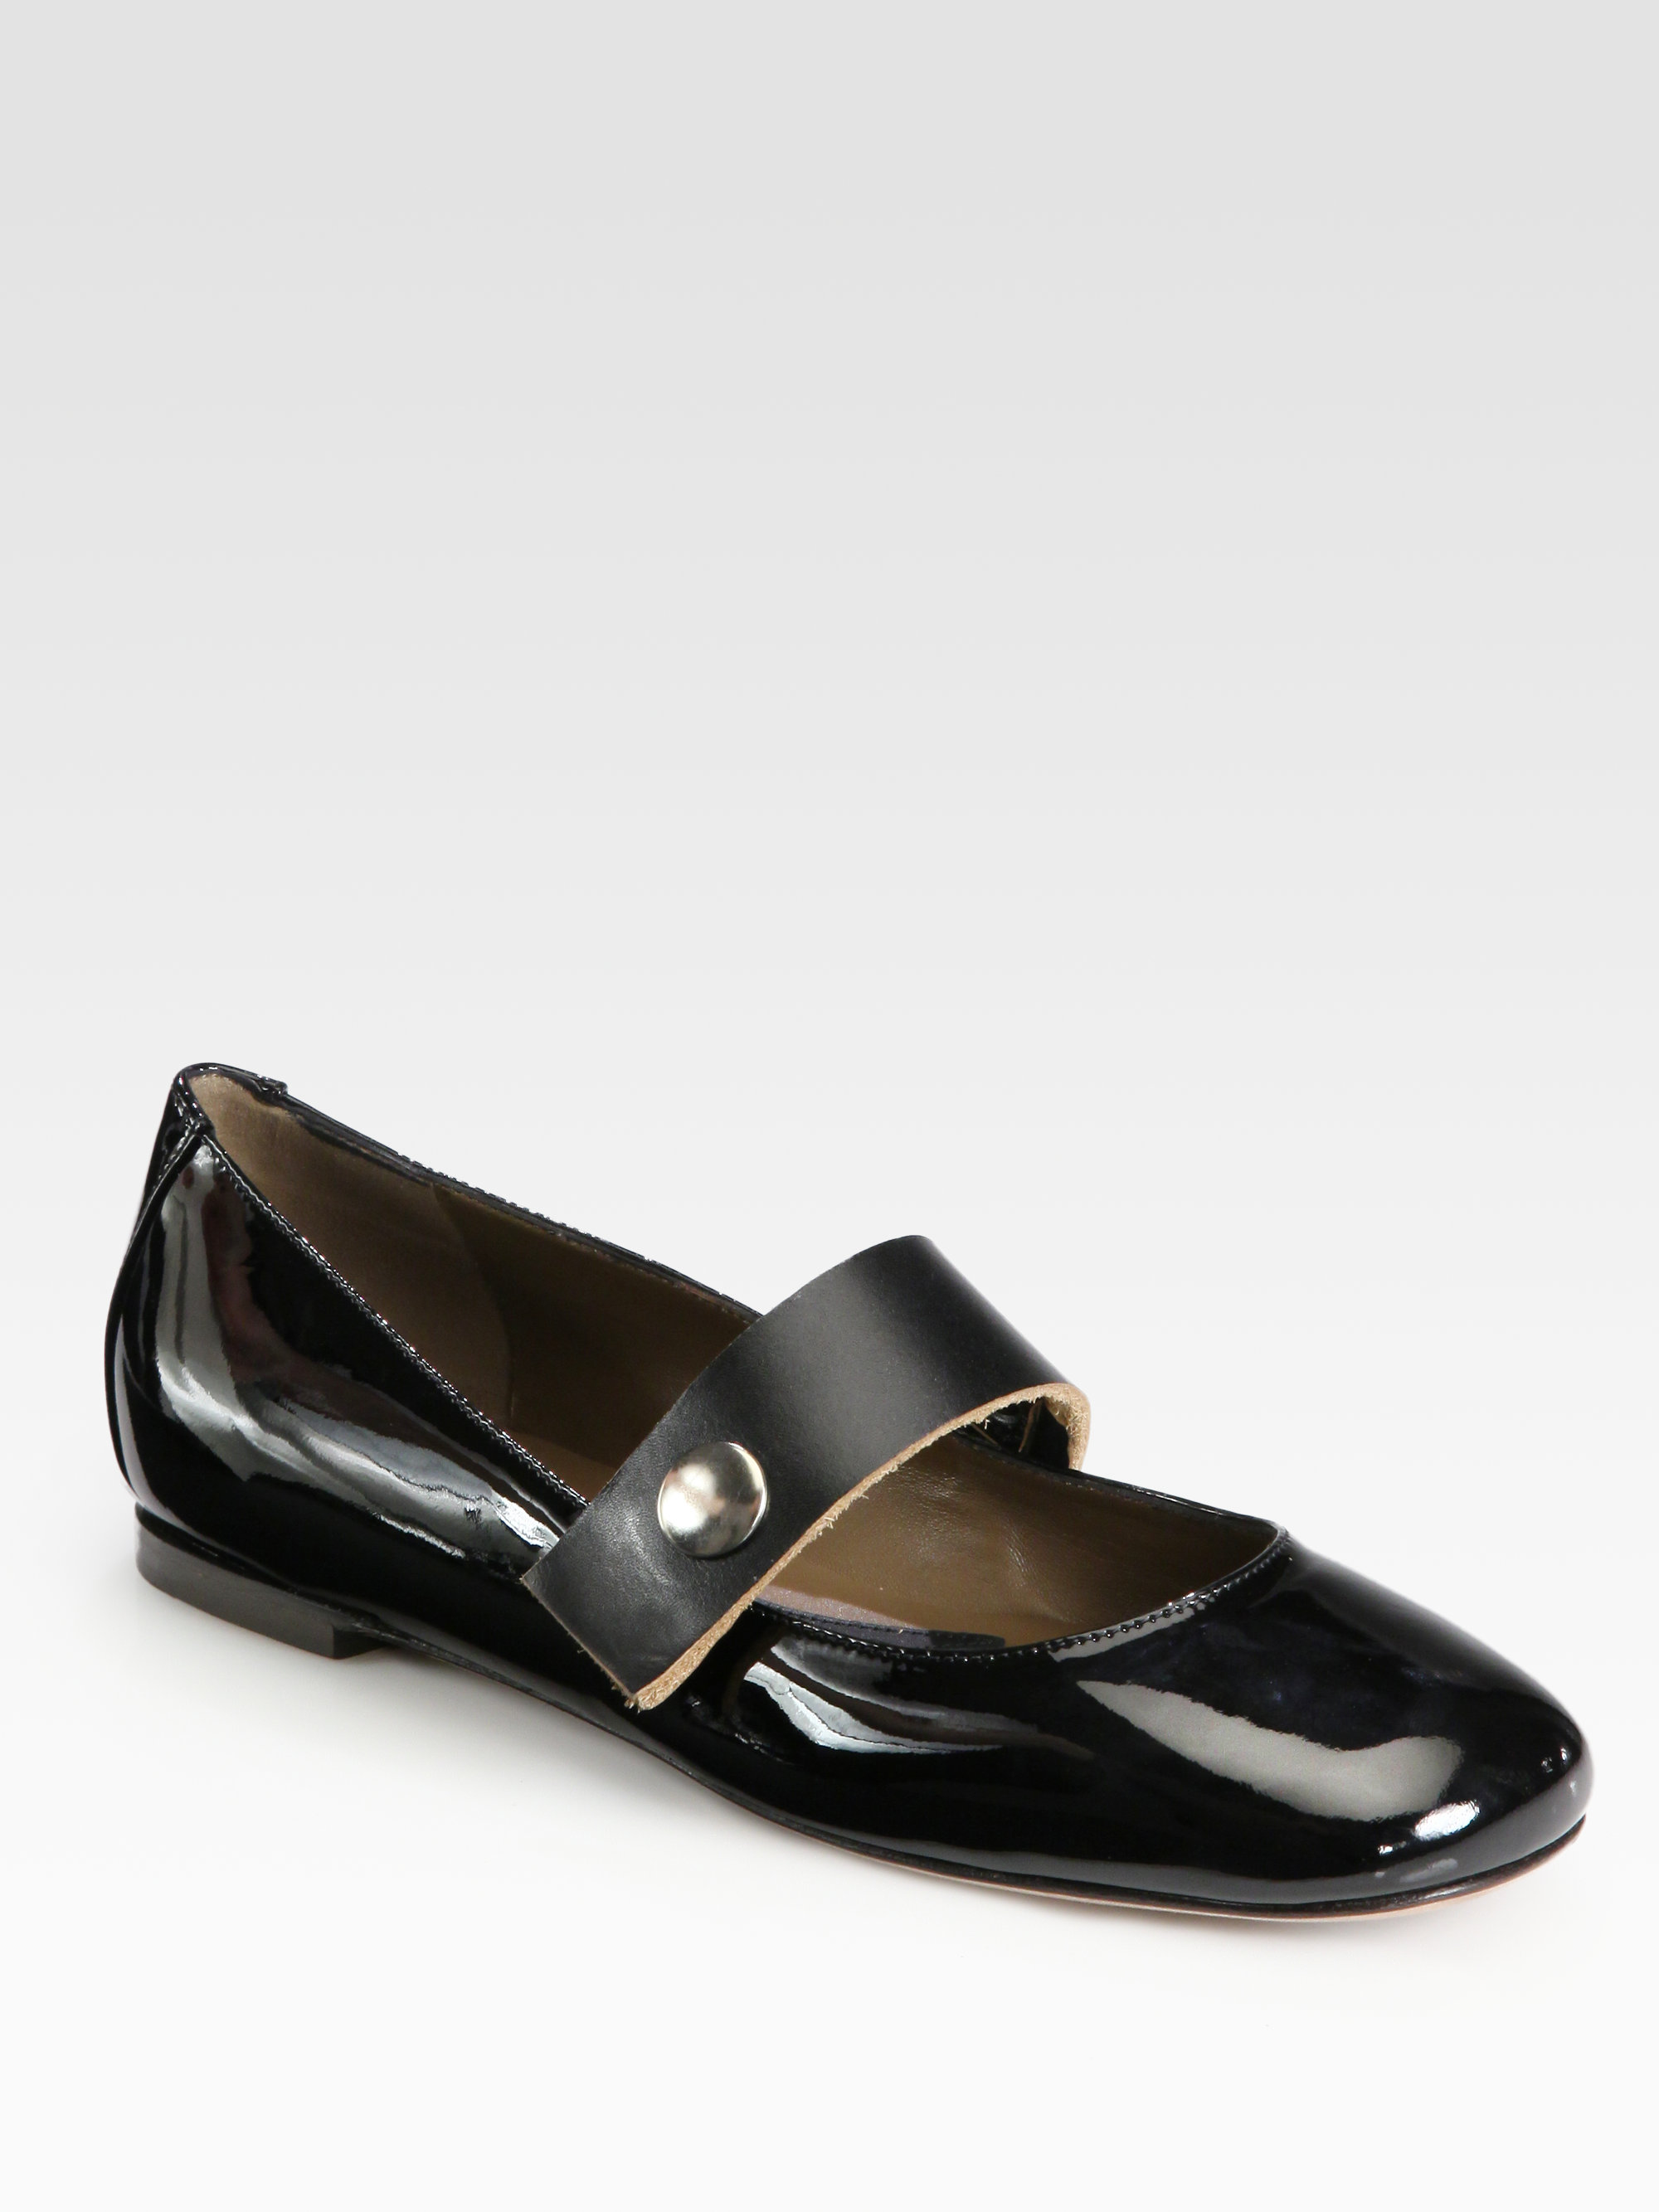 Marni Patent Leather Ballet Flats release dates for sale 9Mp1VX7CK